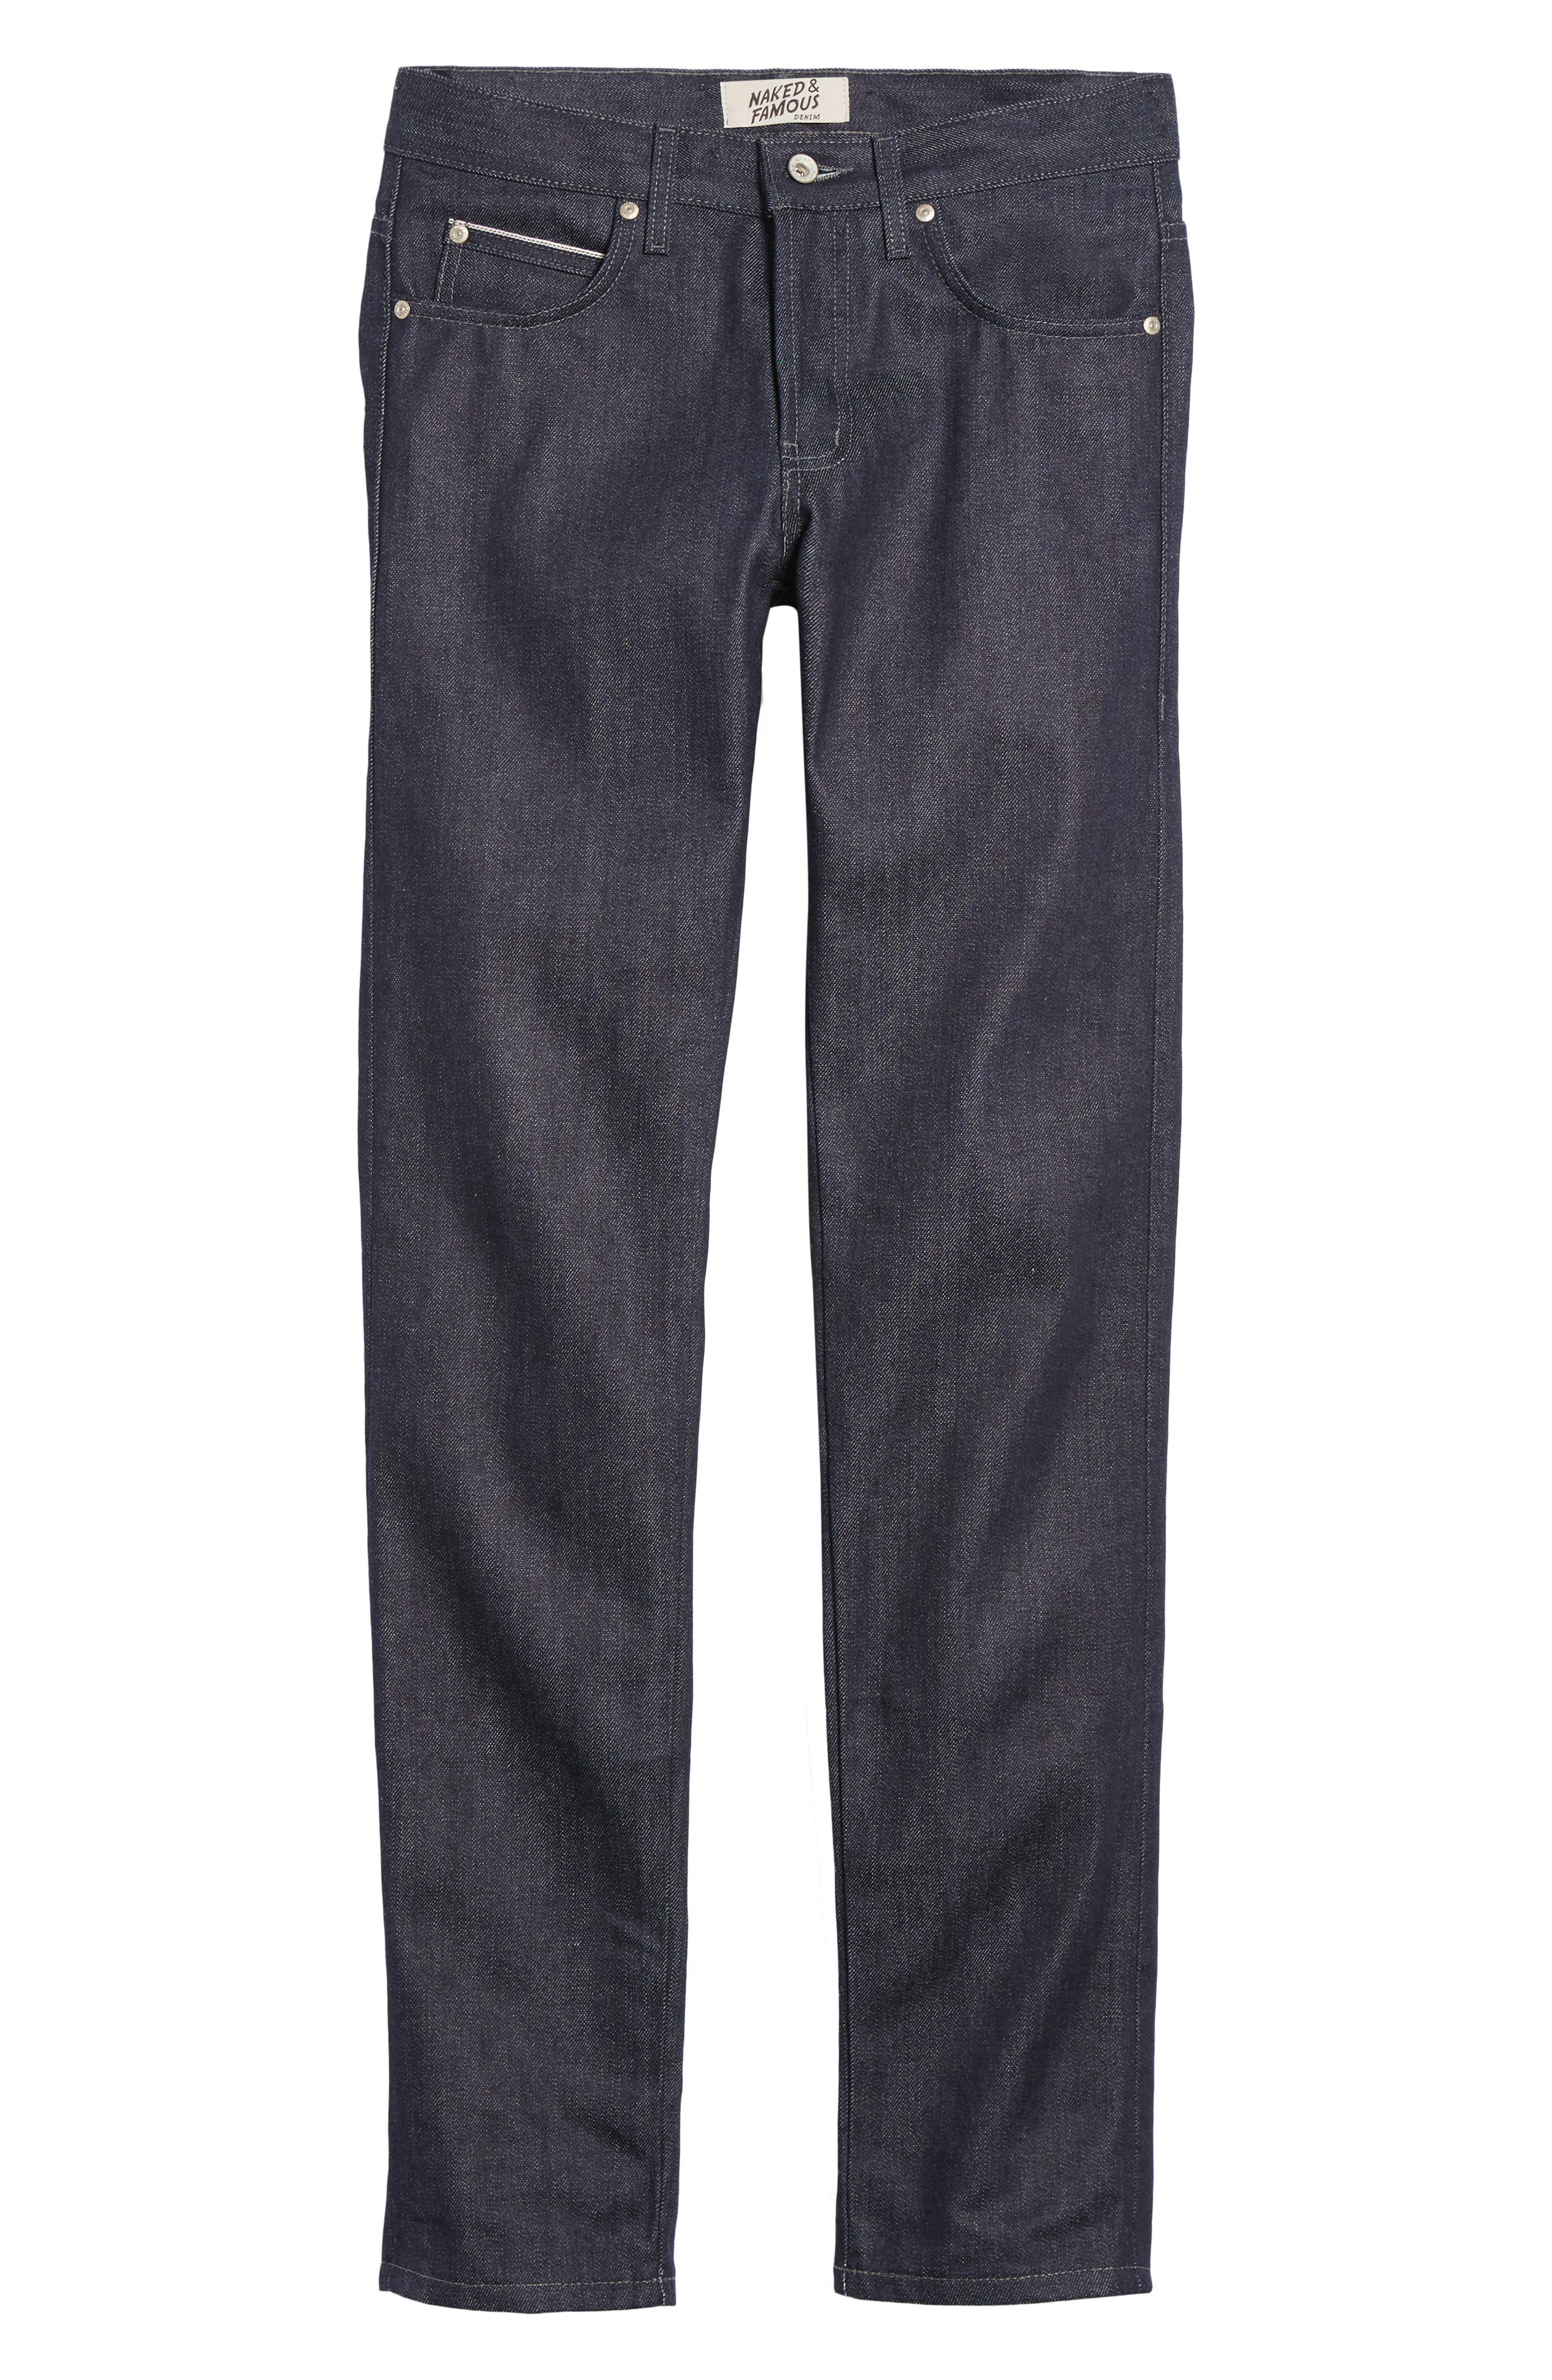 Naked & Famous Super Skinny Guy Skinny Fit Jeans,                             Alternate thumbnail 6, color,                             INDIGO